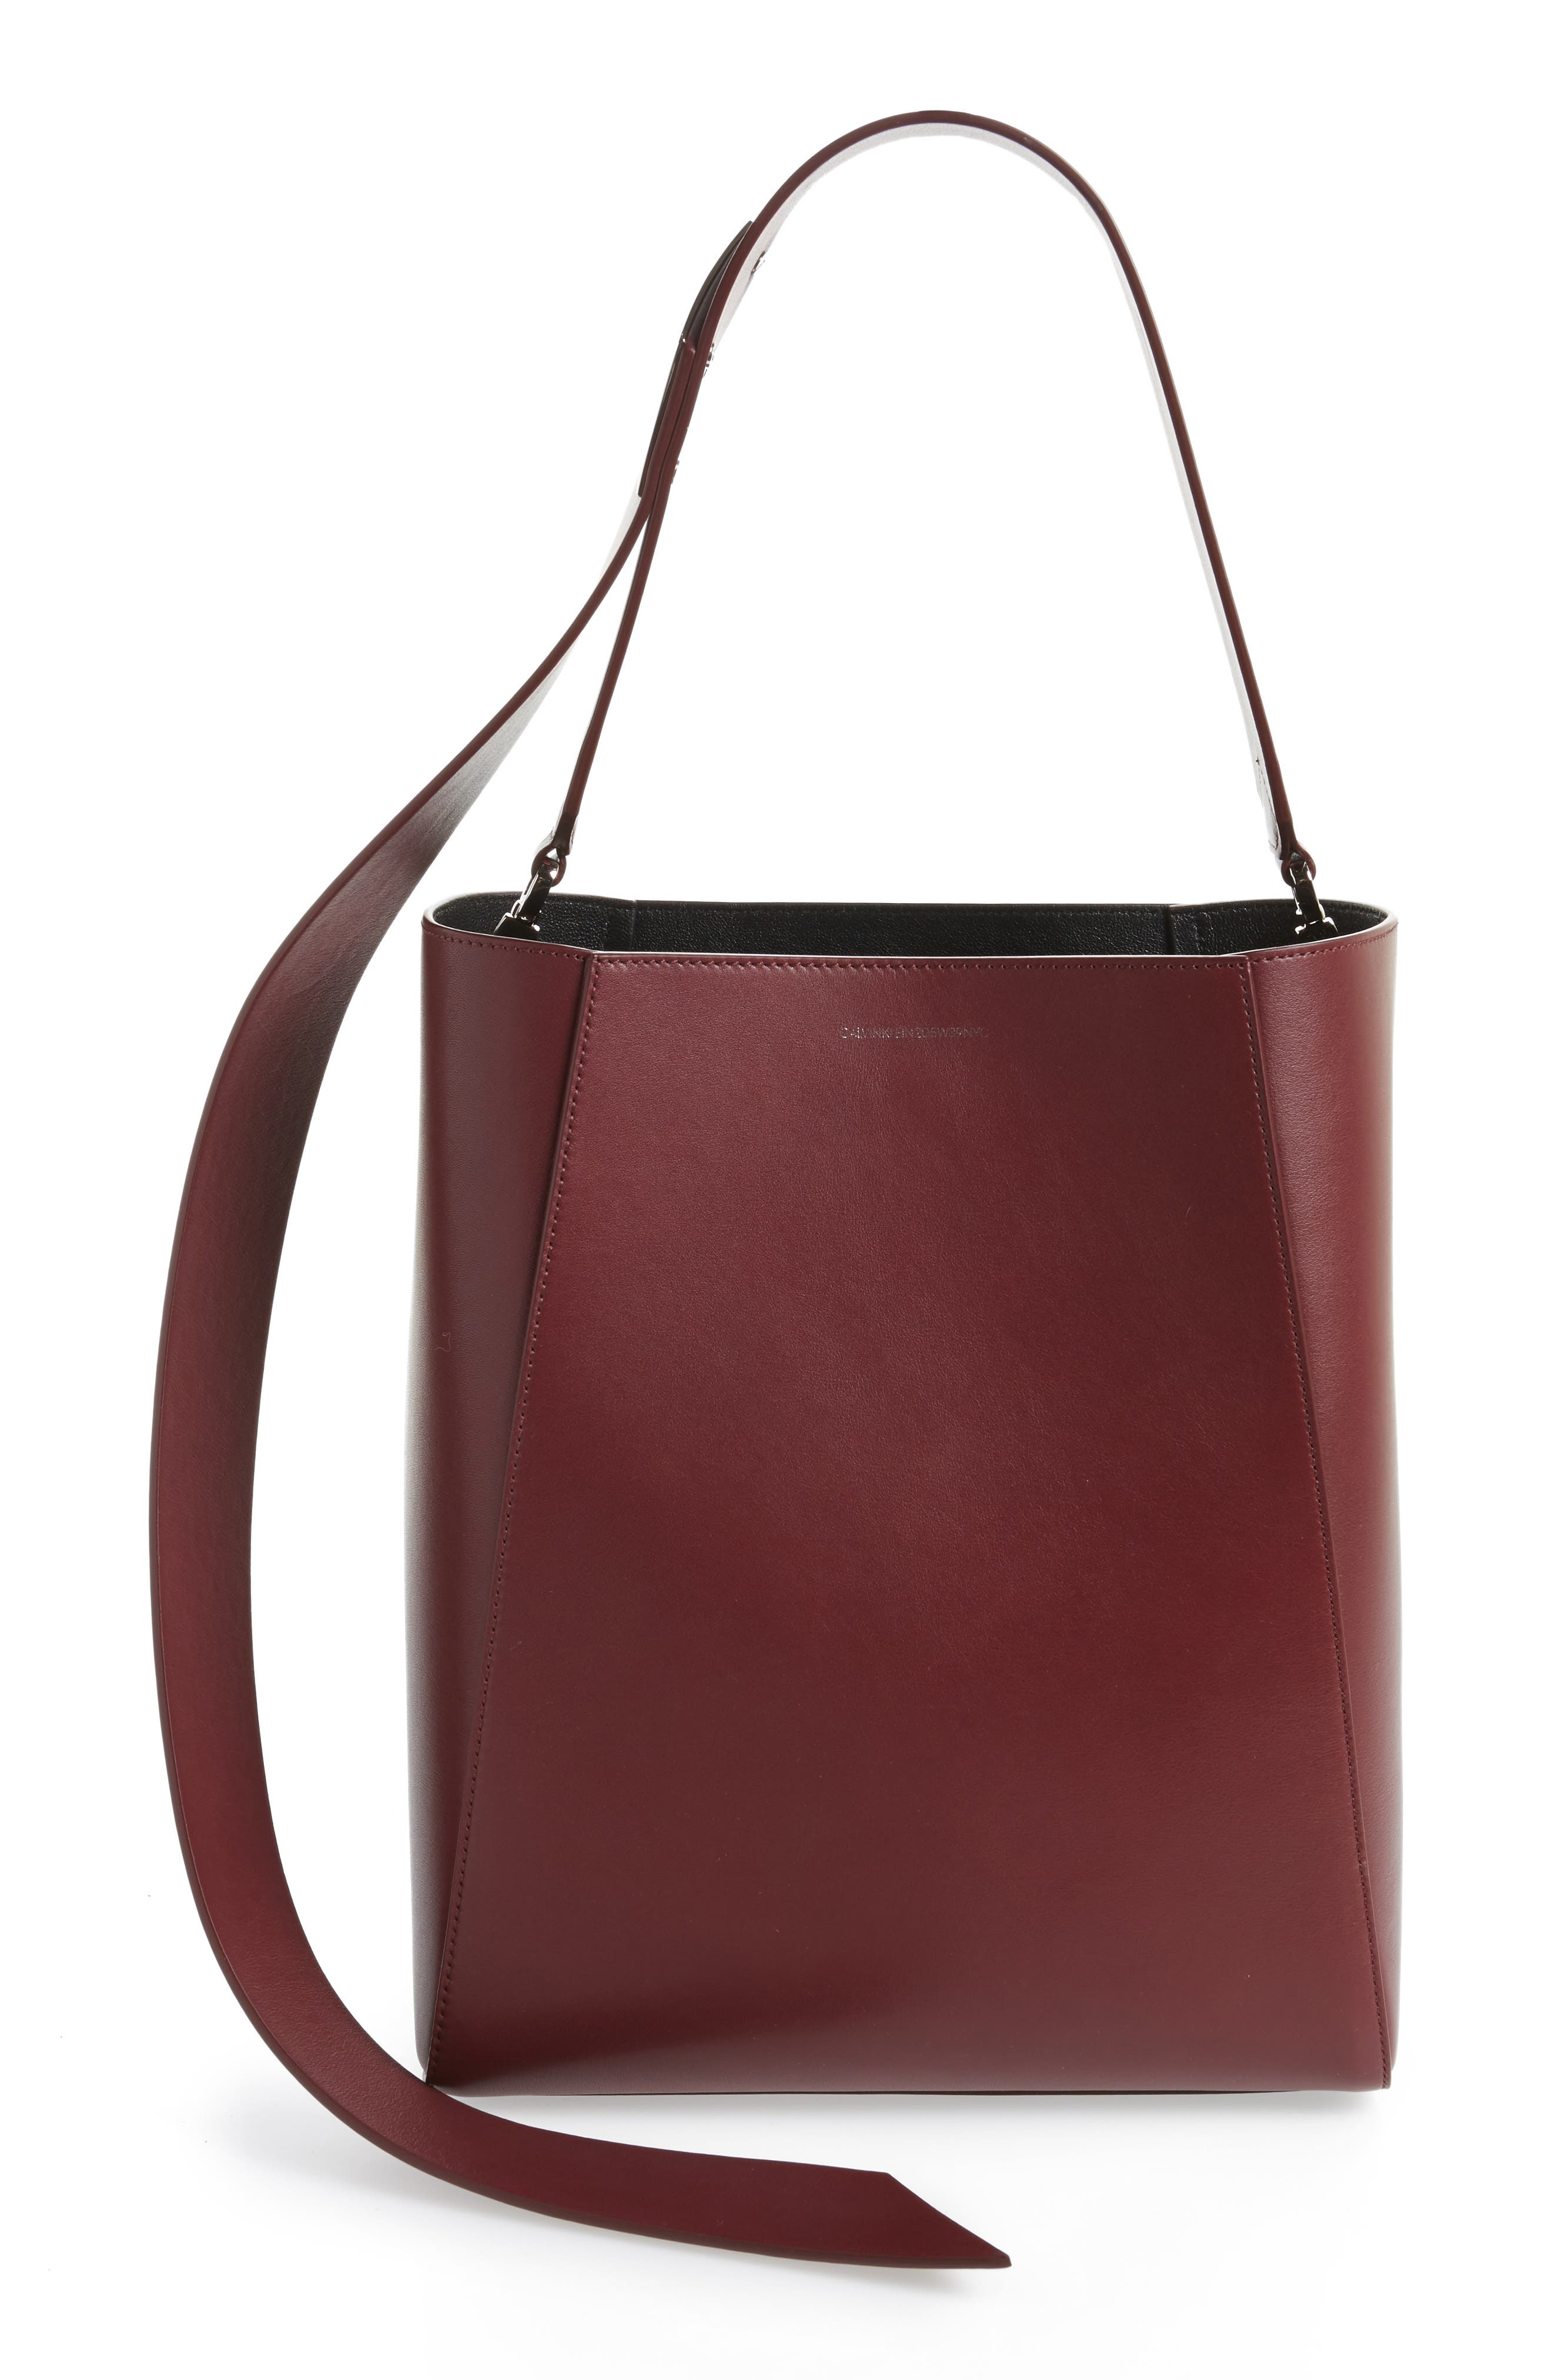 Main Image - CALVIN KLEIN 205W39NYC Medium Calfskin Leather Bucket Bag with Removable Pouch